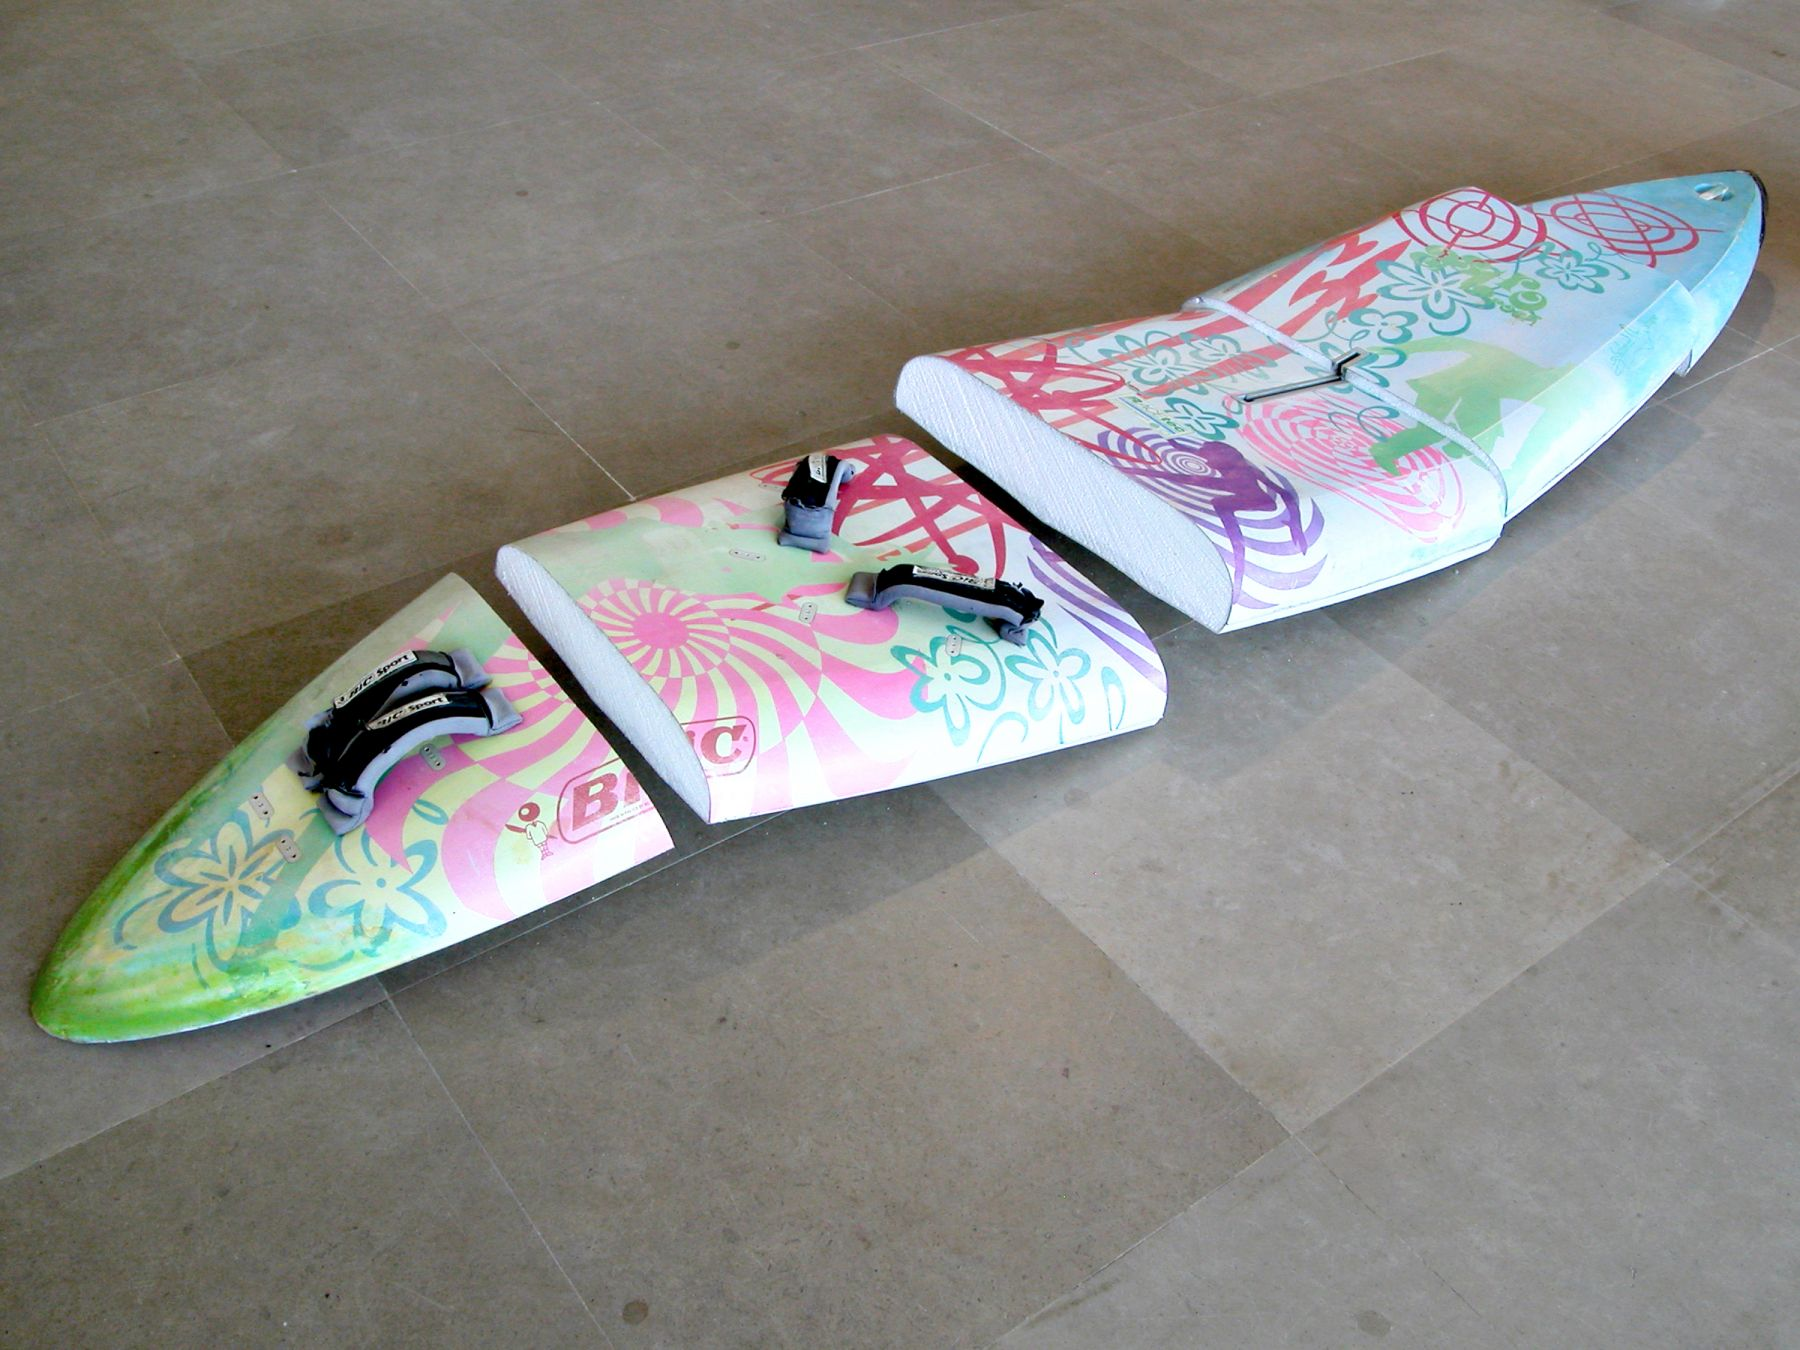 Michael Krebber, astrorock, 2008, Windsurfing board, wall mounts, 116 x 23 inches